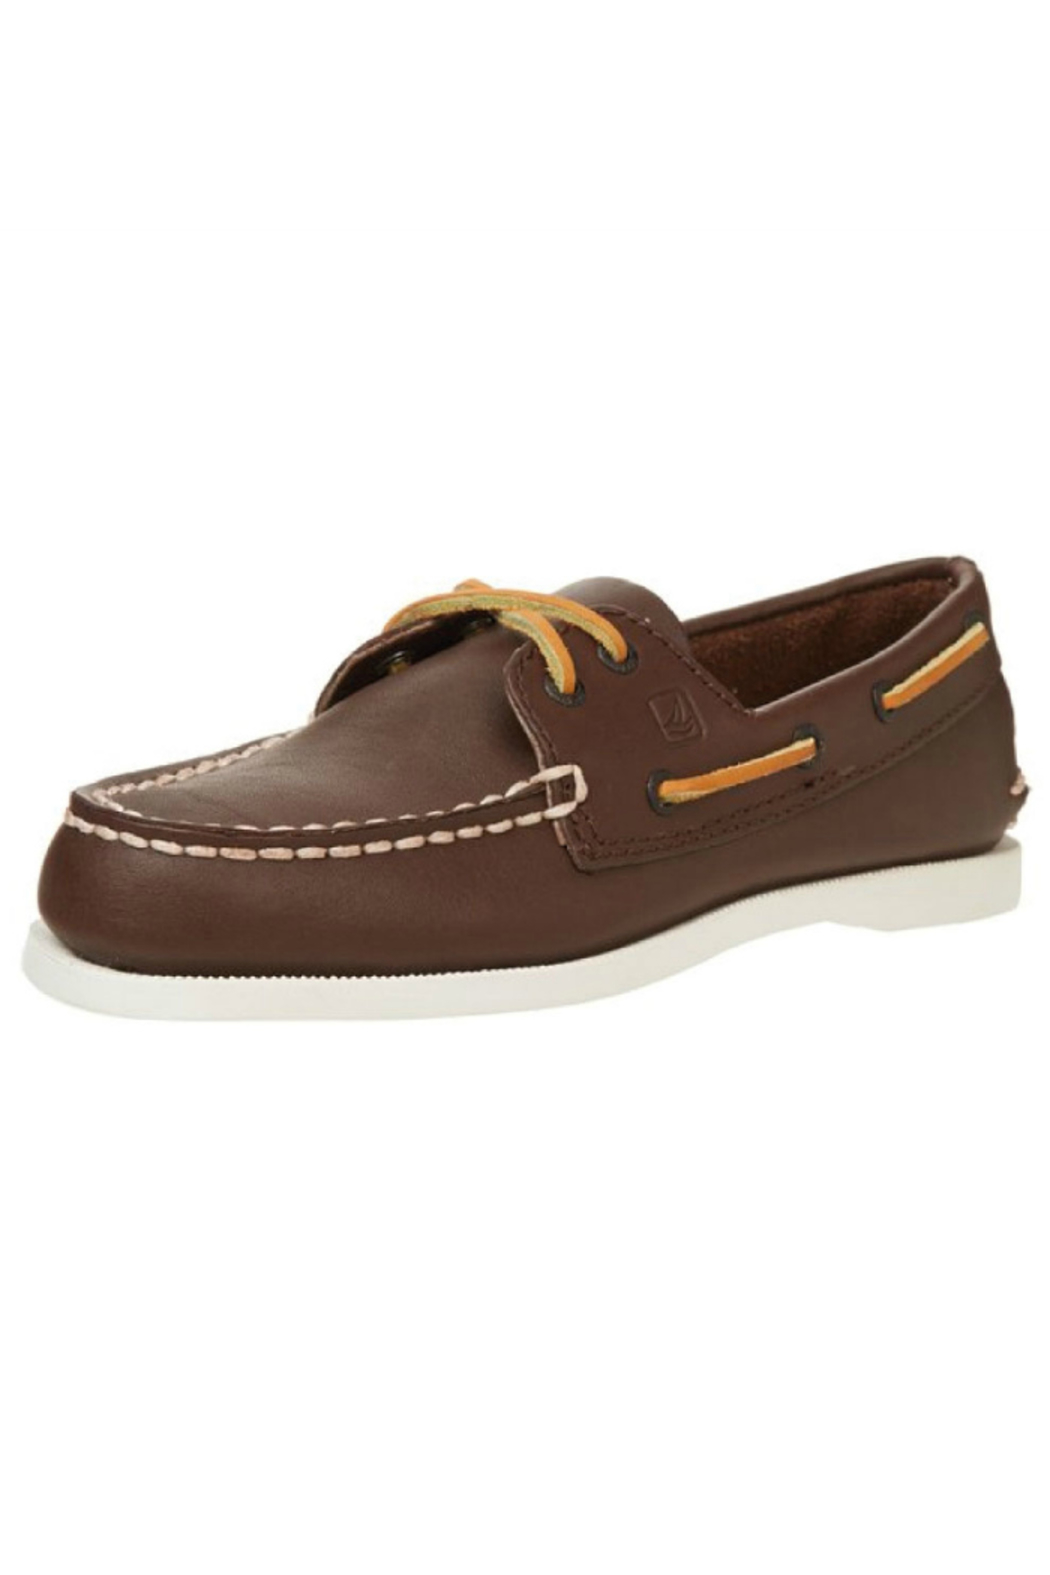 Sperry Kid's Authentic Original Boat Shoe - Front Full Image